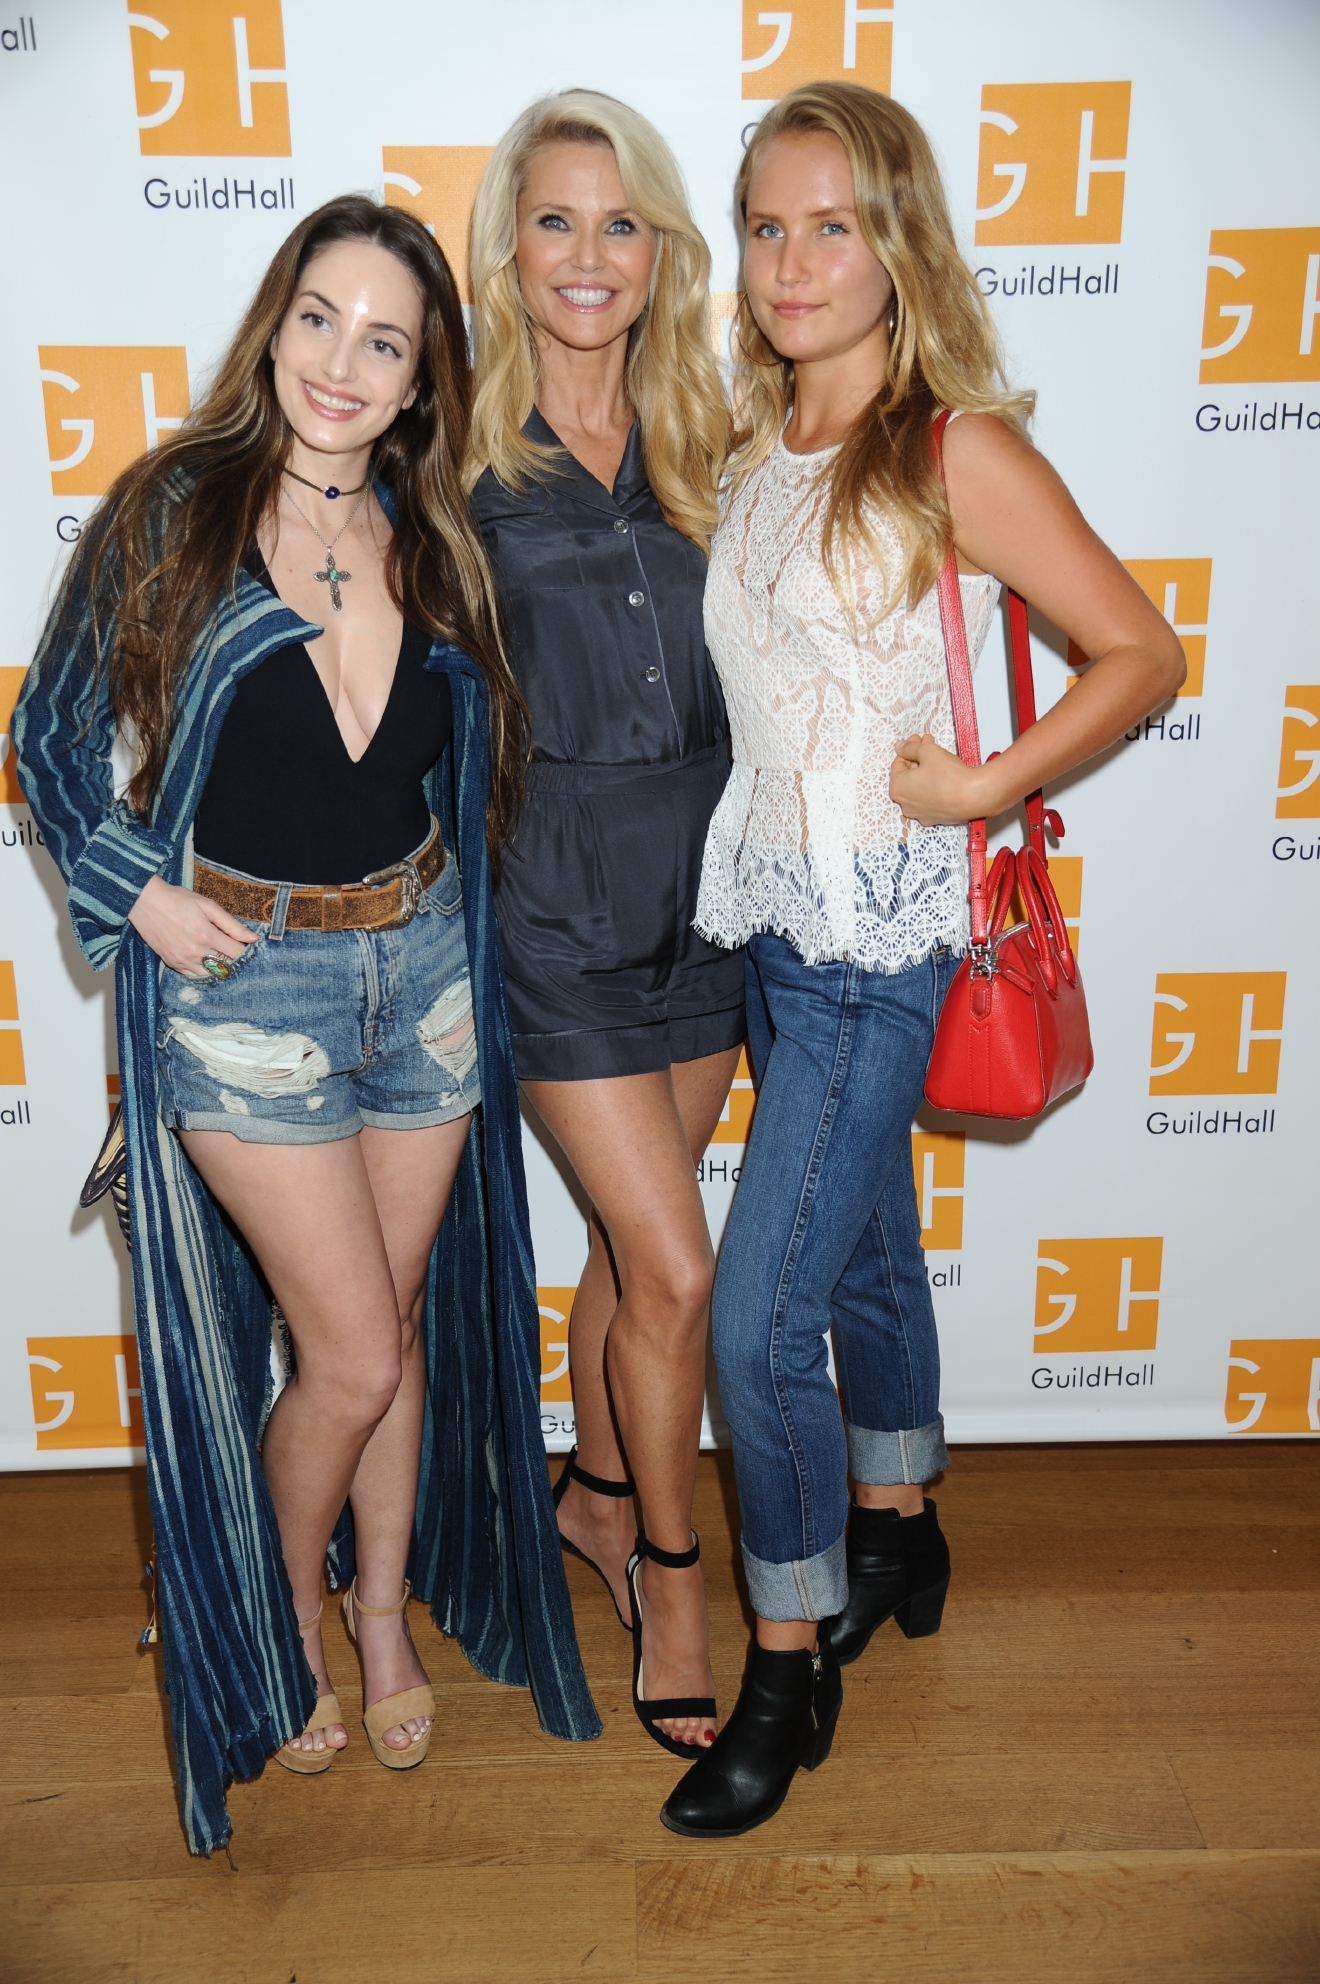 Hampton Comedy Show at Guild Hall                                    Featuring: Alexa Ray Joel, Christie Brinkley, Sailor Cook                  Where: East Hampton, New York, United States                  When: 27 Aug 2016                  Credit: Rob Rich/WENN.com